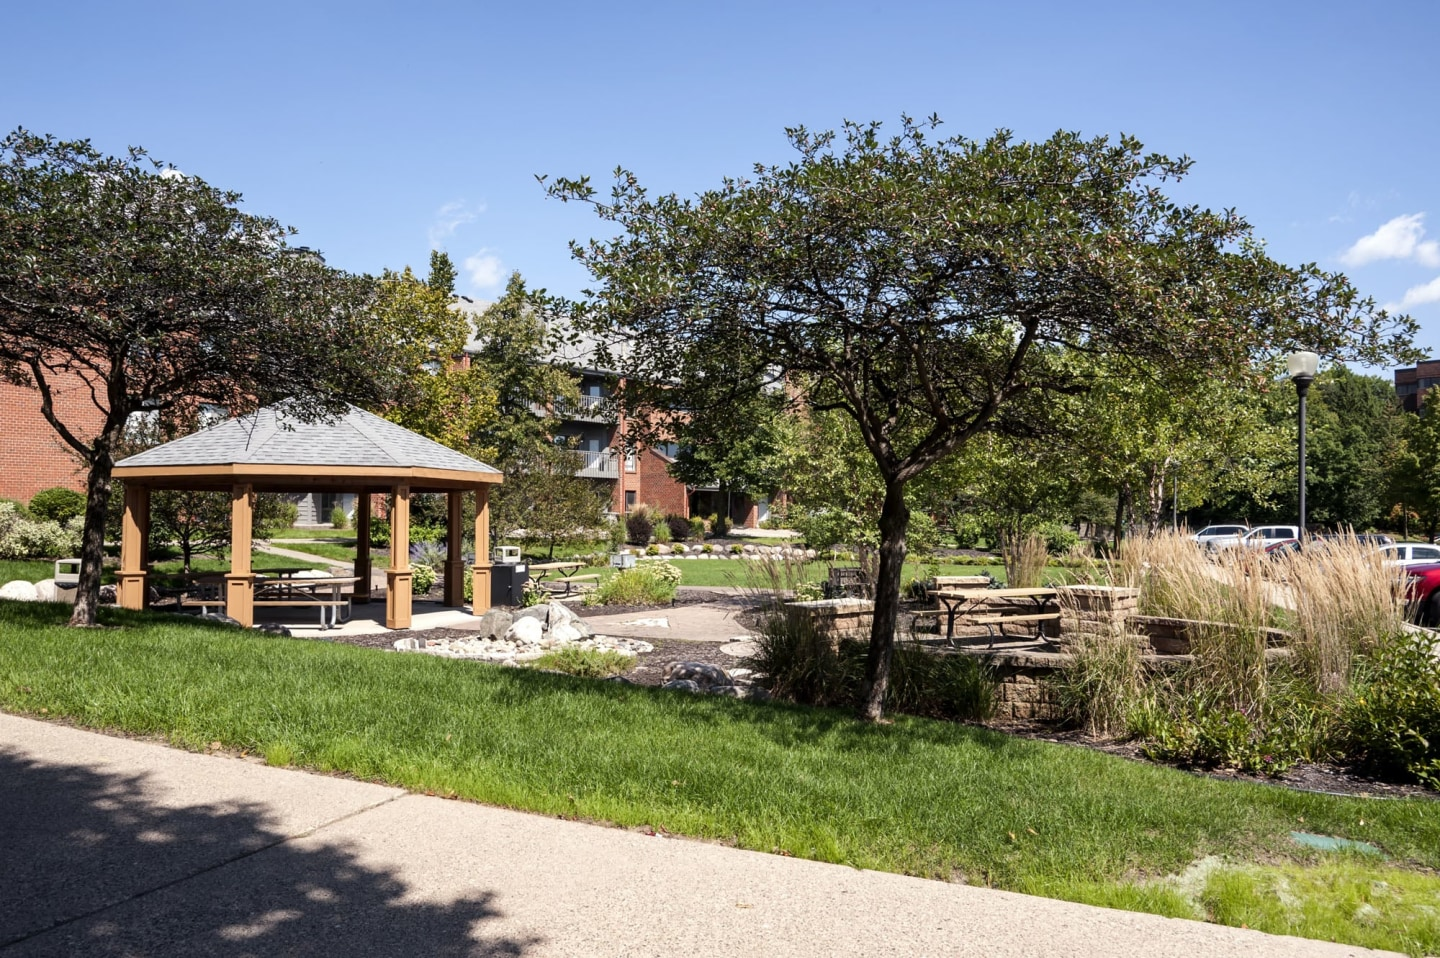 Image of The Park at City West Apartments at 6426 City W Pkwy Eden Prairie MN